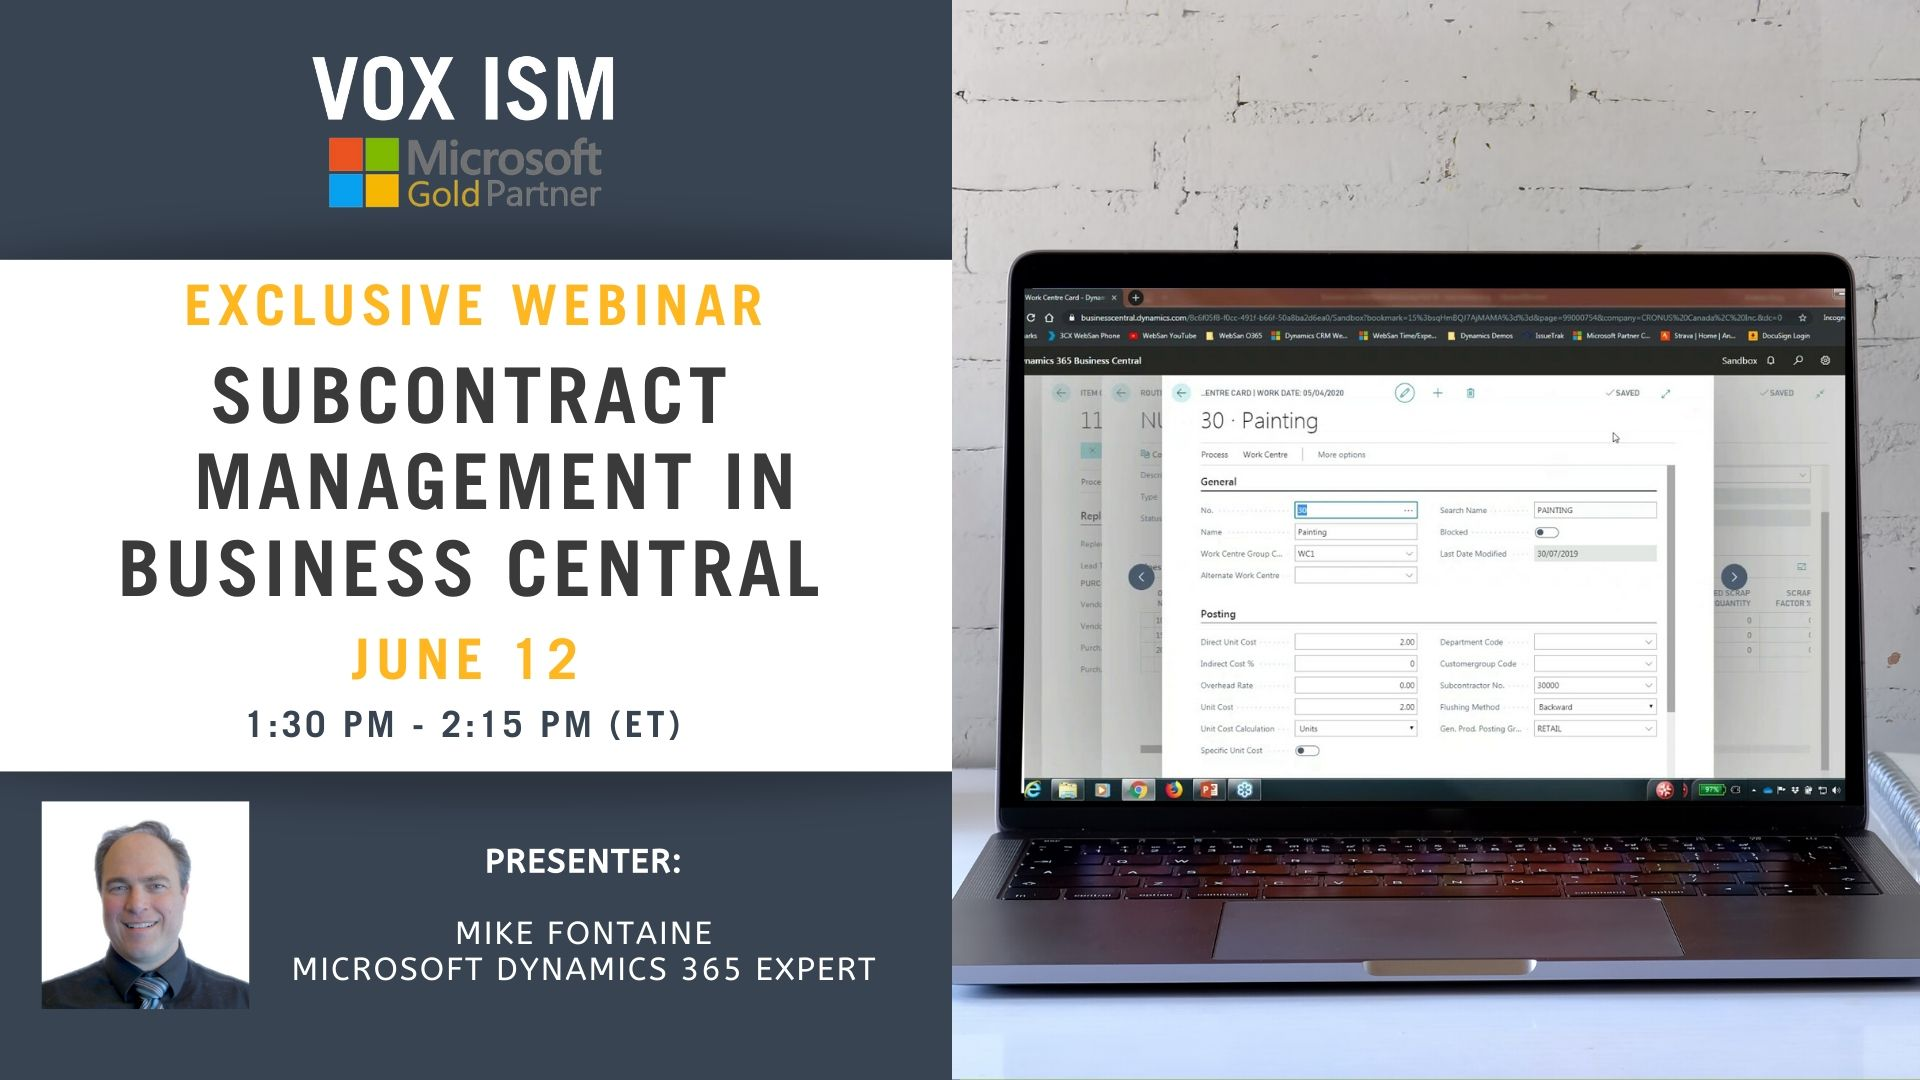 Subcontract Management in Business Central - June 12 - Webinar VOX ISM